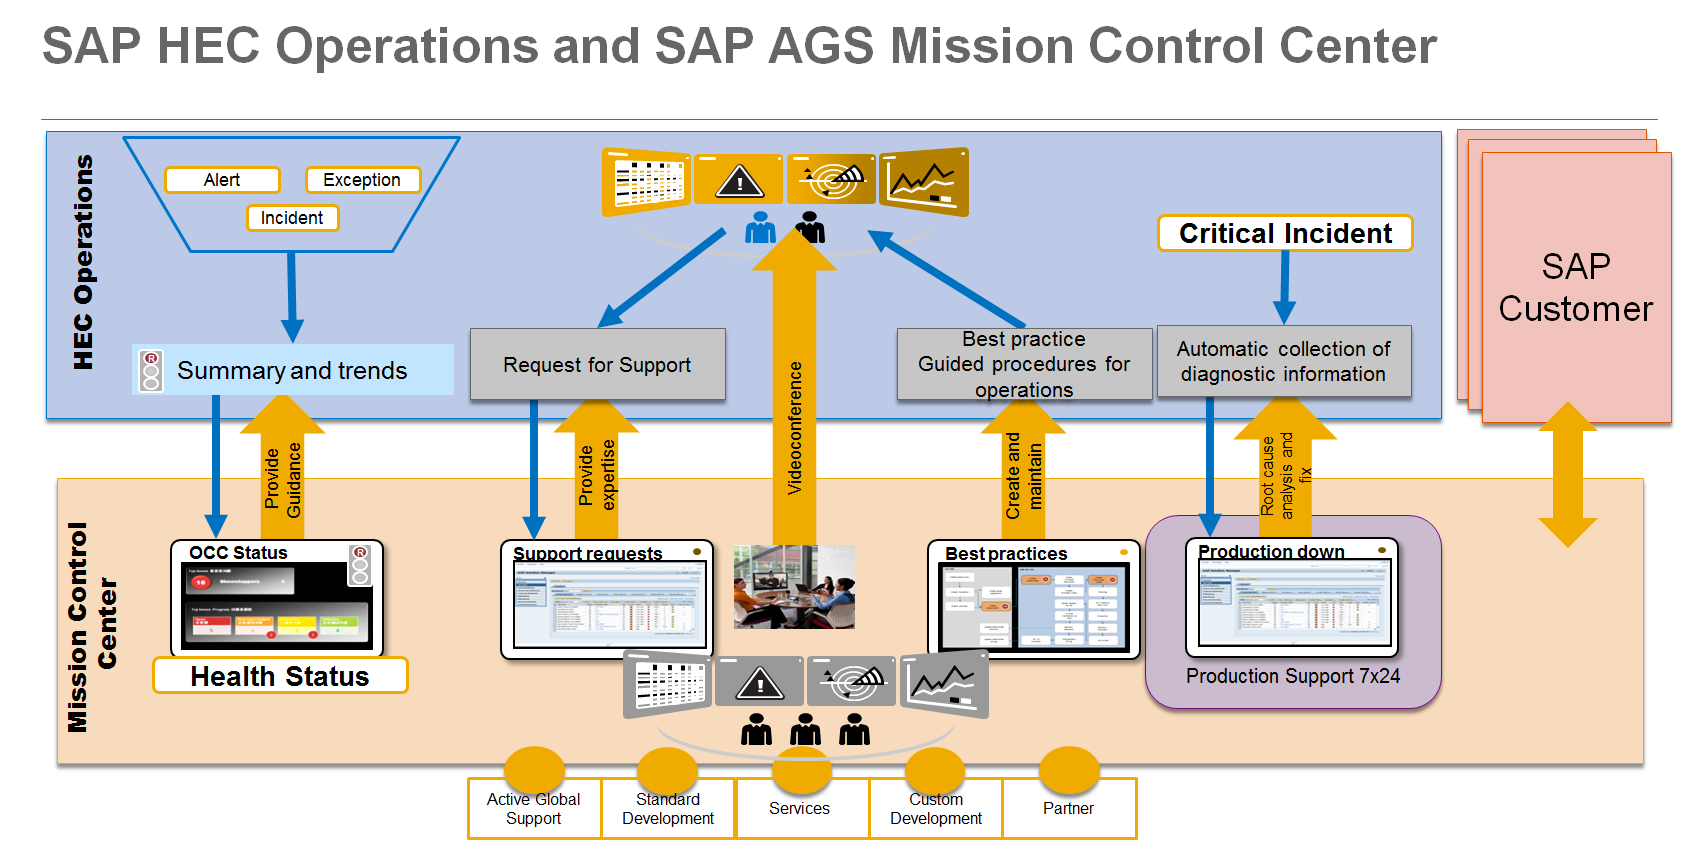 SAP_HEC_Operations_and_SAP_AGS_Mission_Control_Center.PNG